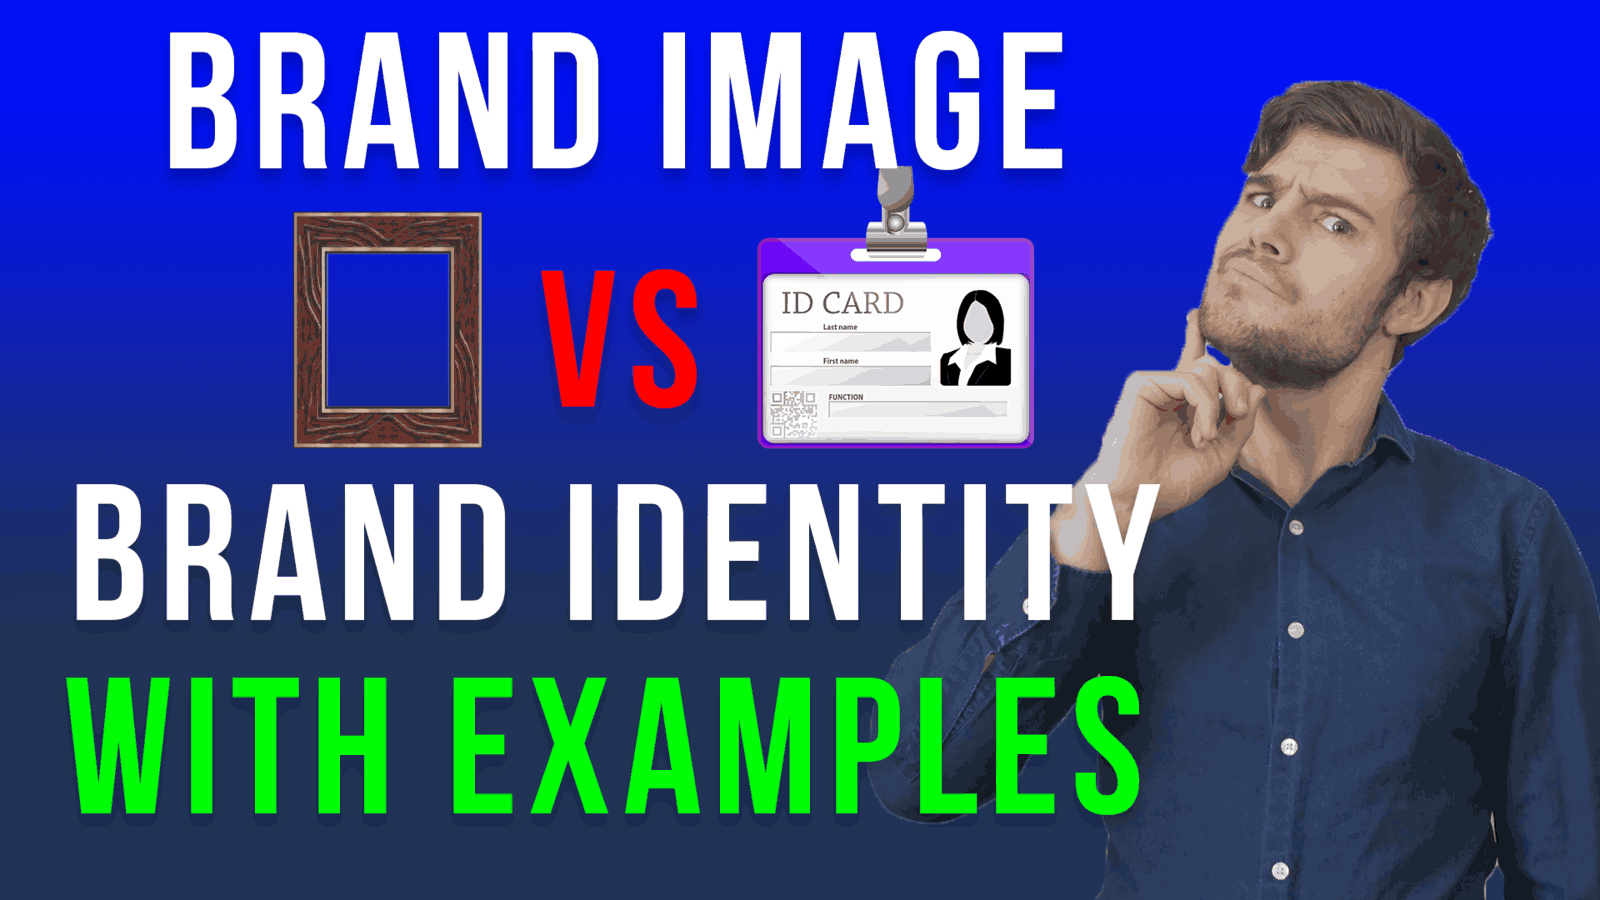 brand image vs brand identity with examples